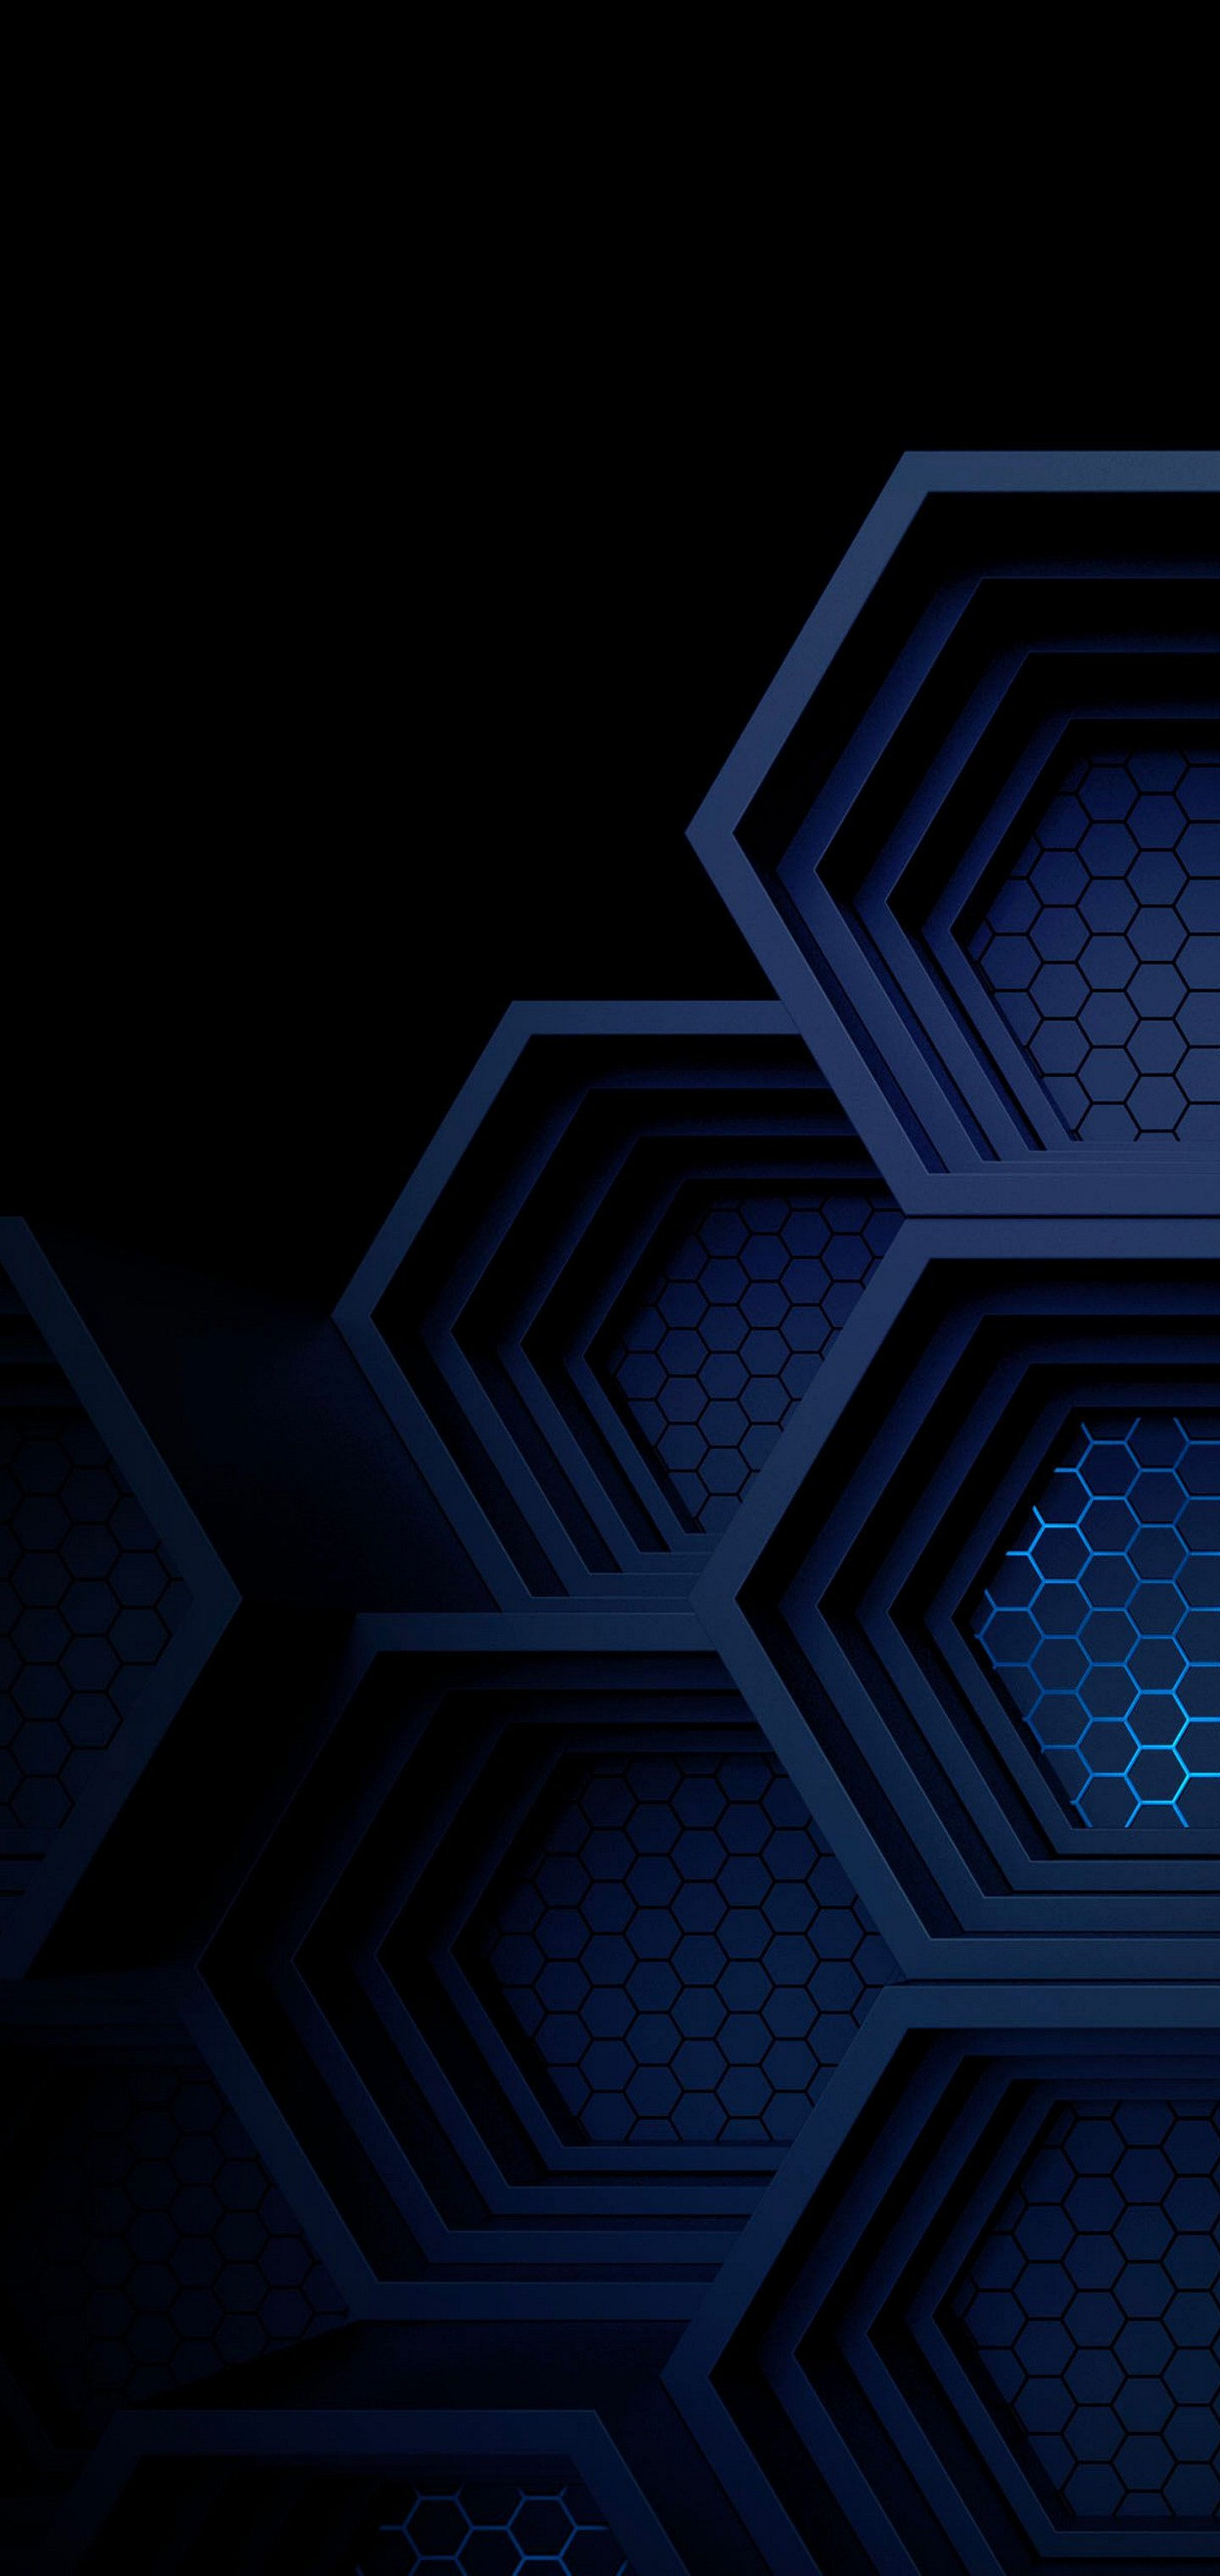 Dark Blue Boxes 3d Abstract Wallpaper 1440x3040